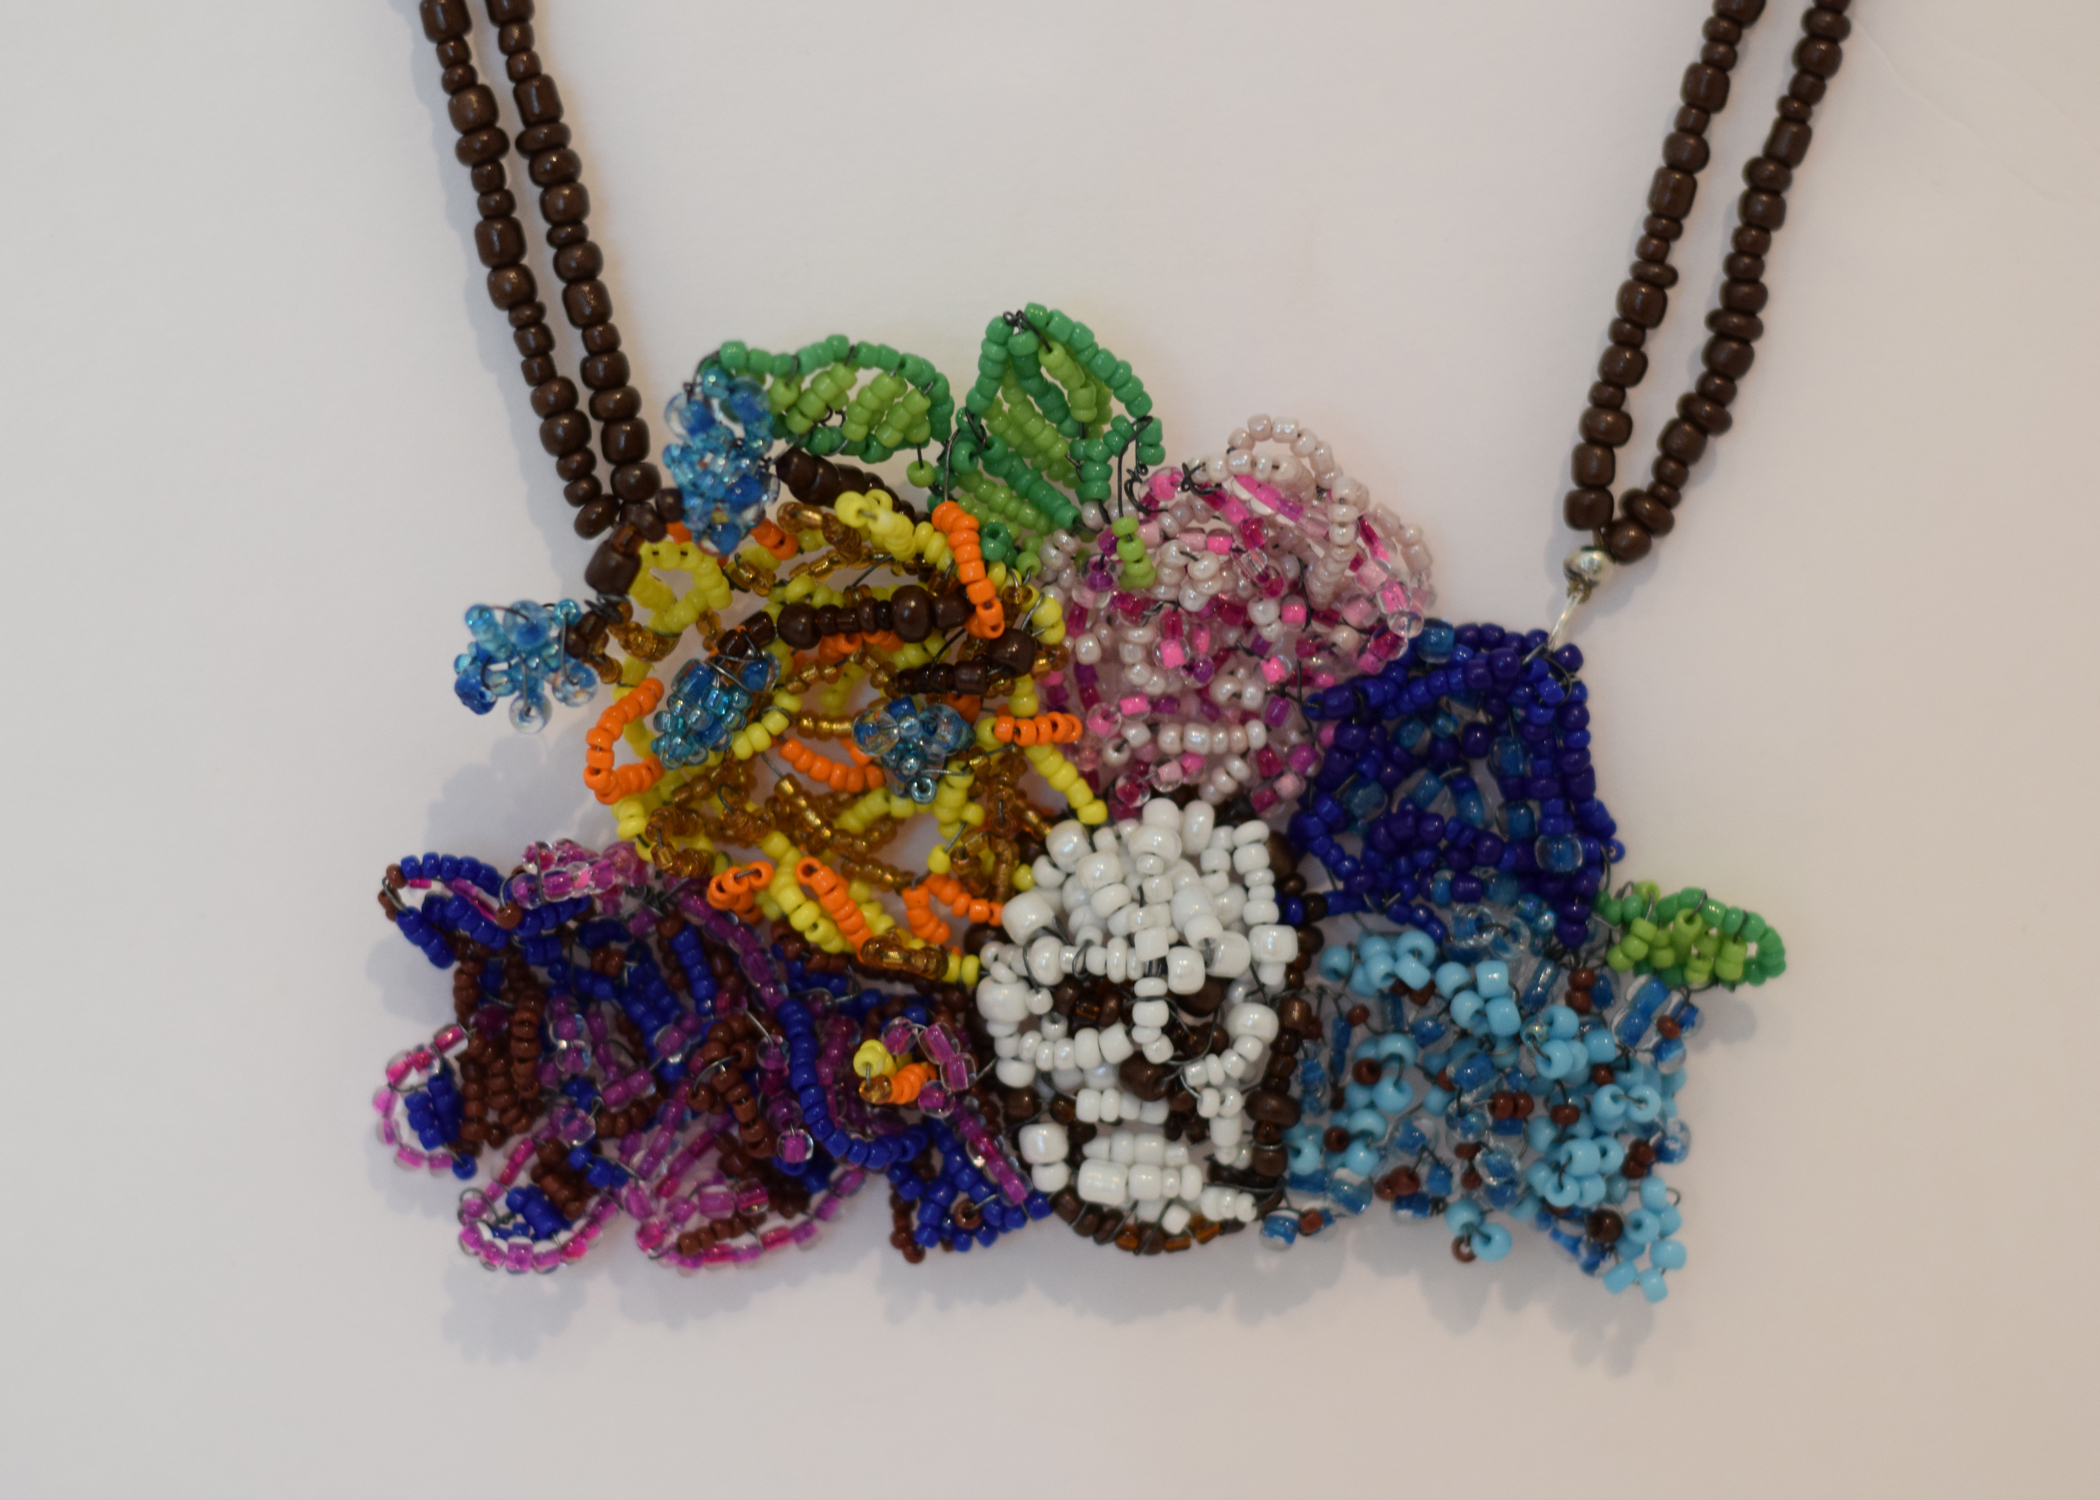 Beaded Necklace  5 in. x 3.5 in.